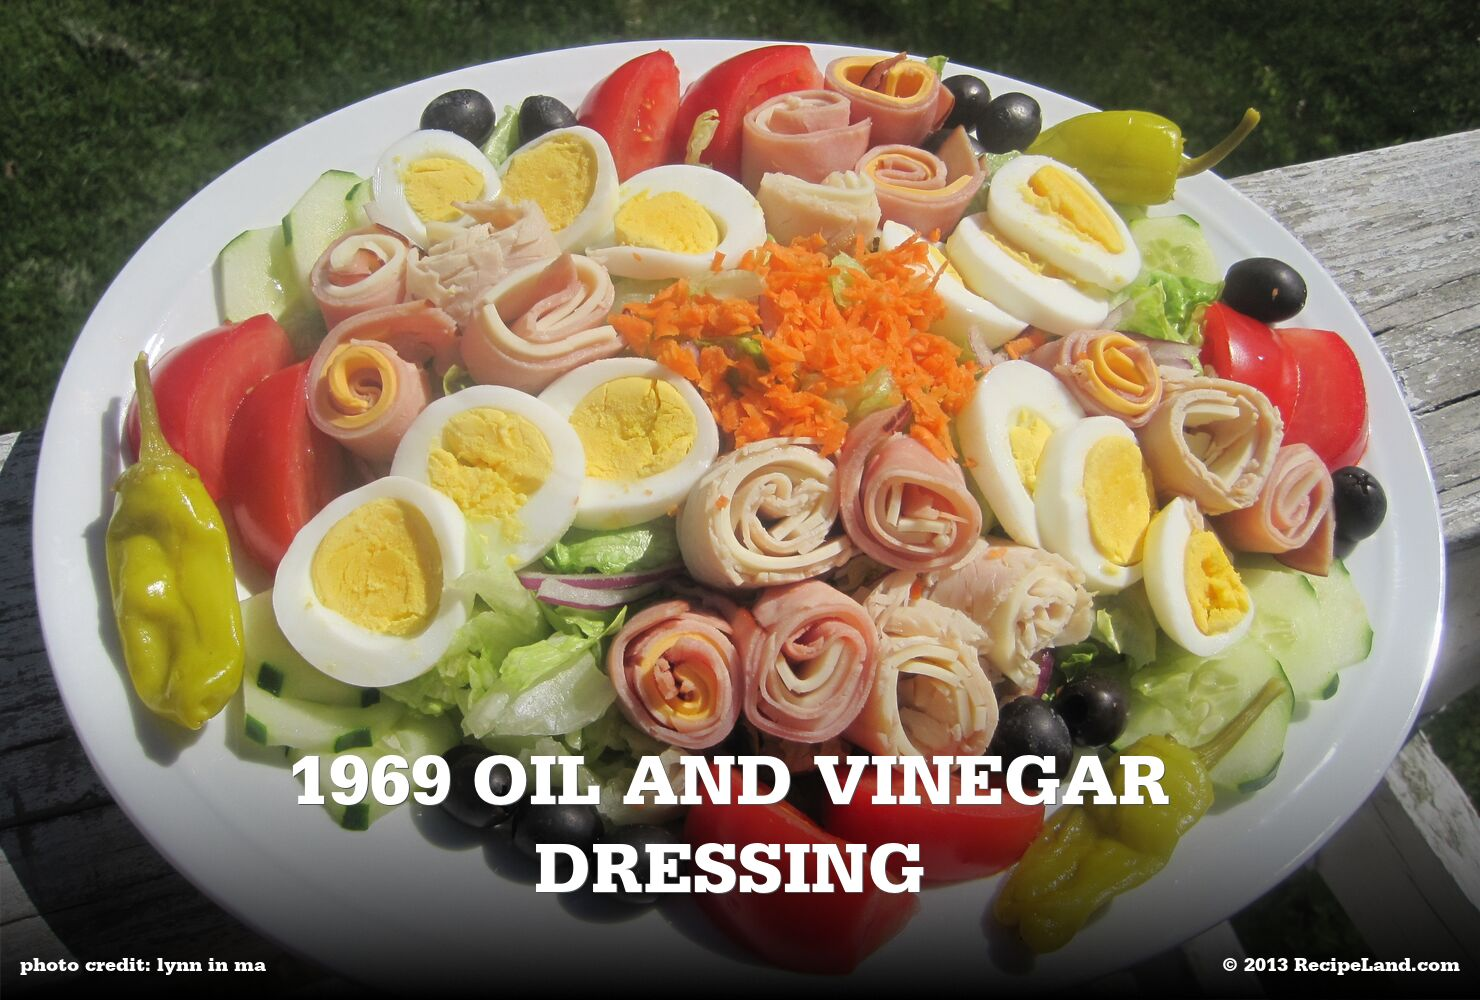 1969 Oil and Vinegar Dressing